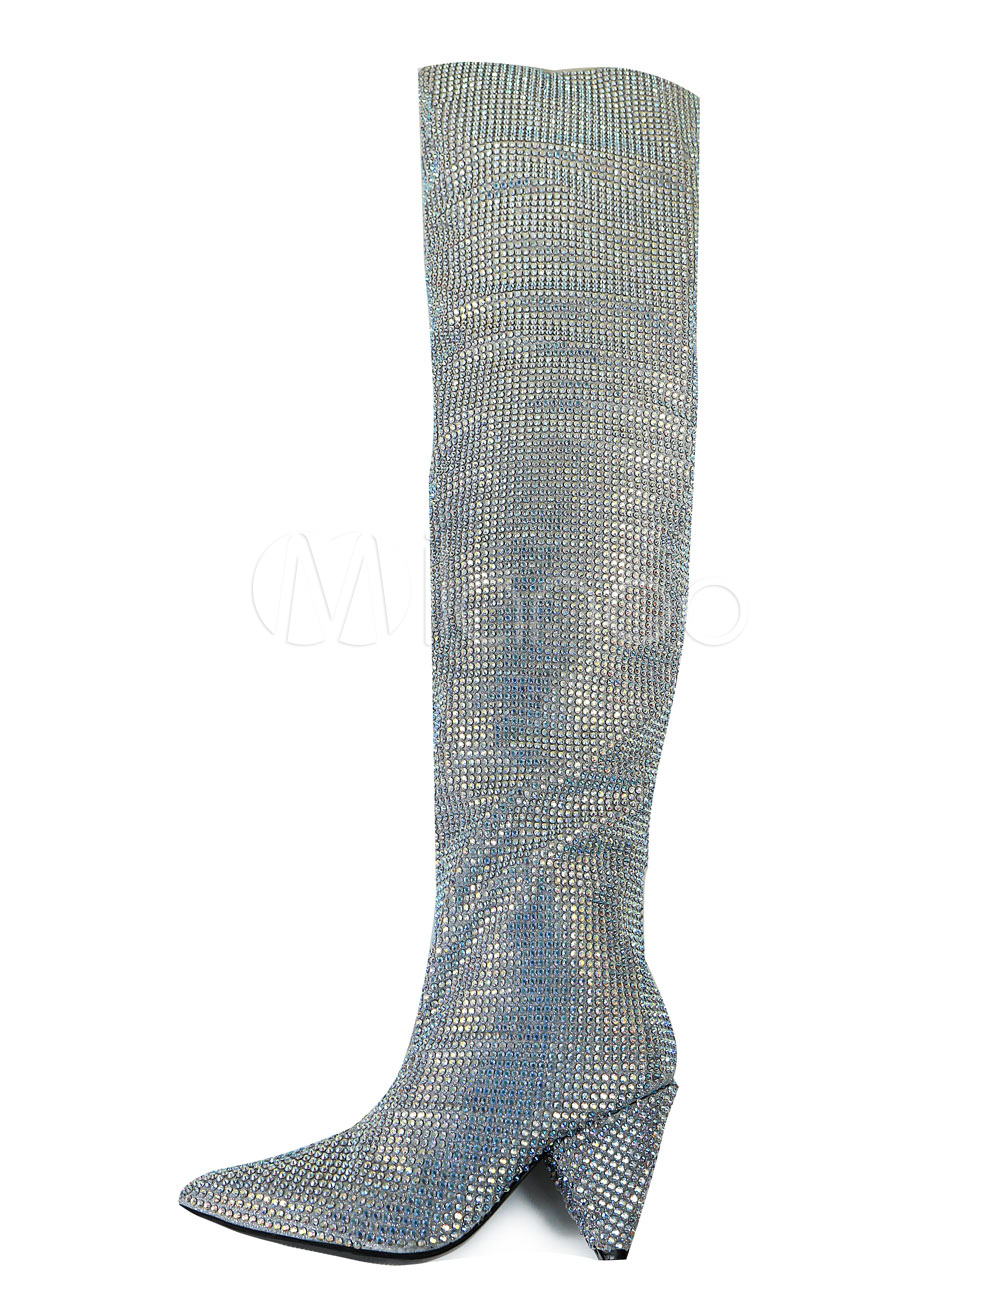 94414d39512 Women Wide Calf Boots Glitter Boots Silver Pointed Toe Rhinestones Knee  High Boots-No.